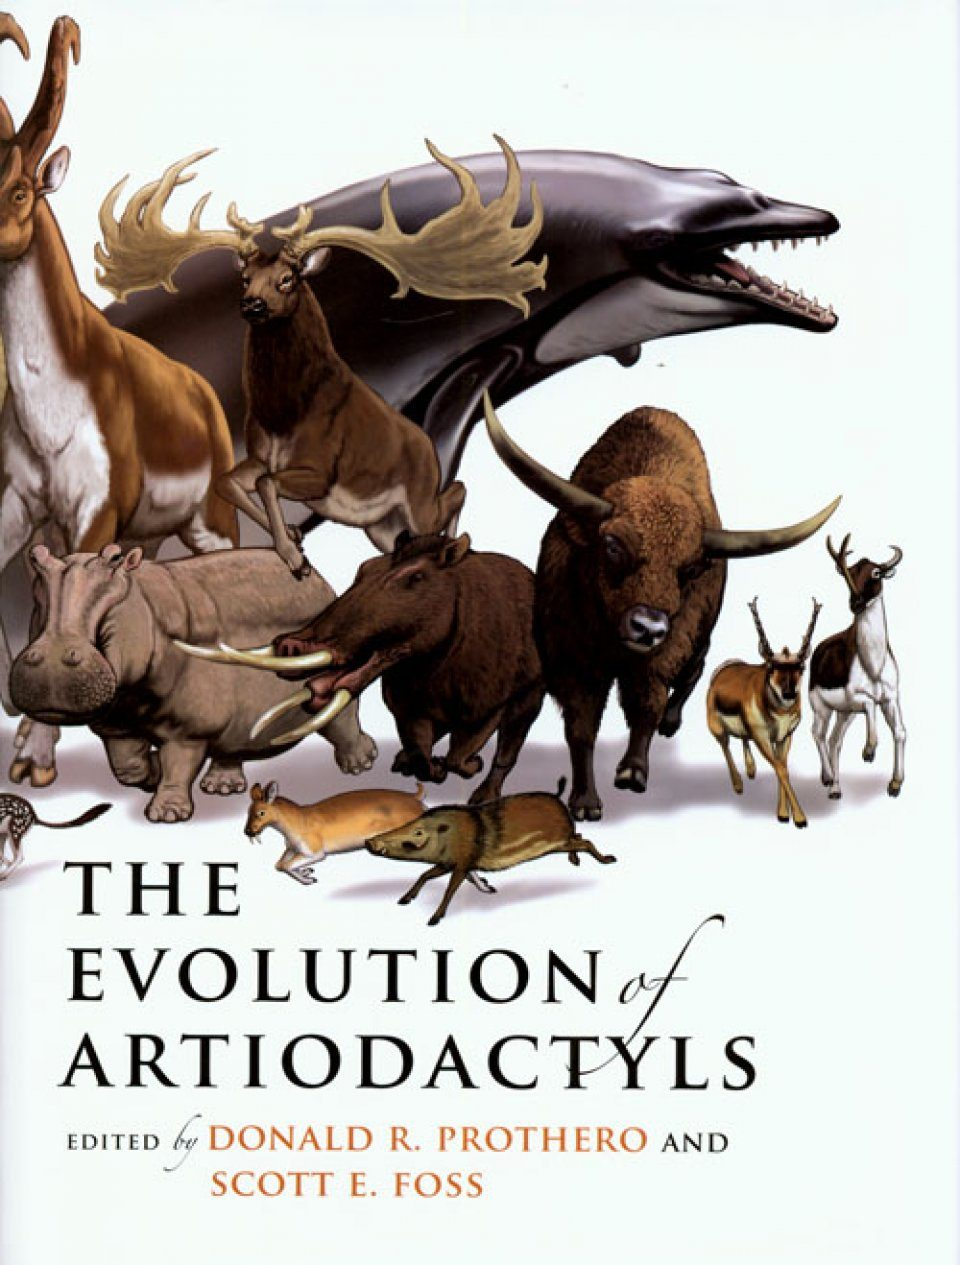 The Evolution of Artiodactyls